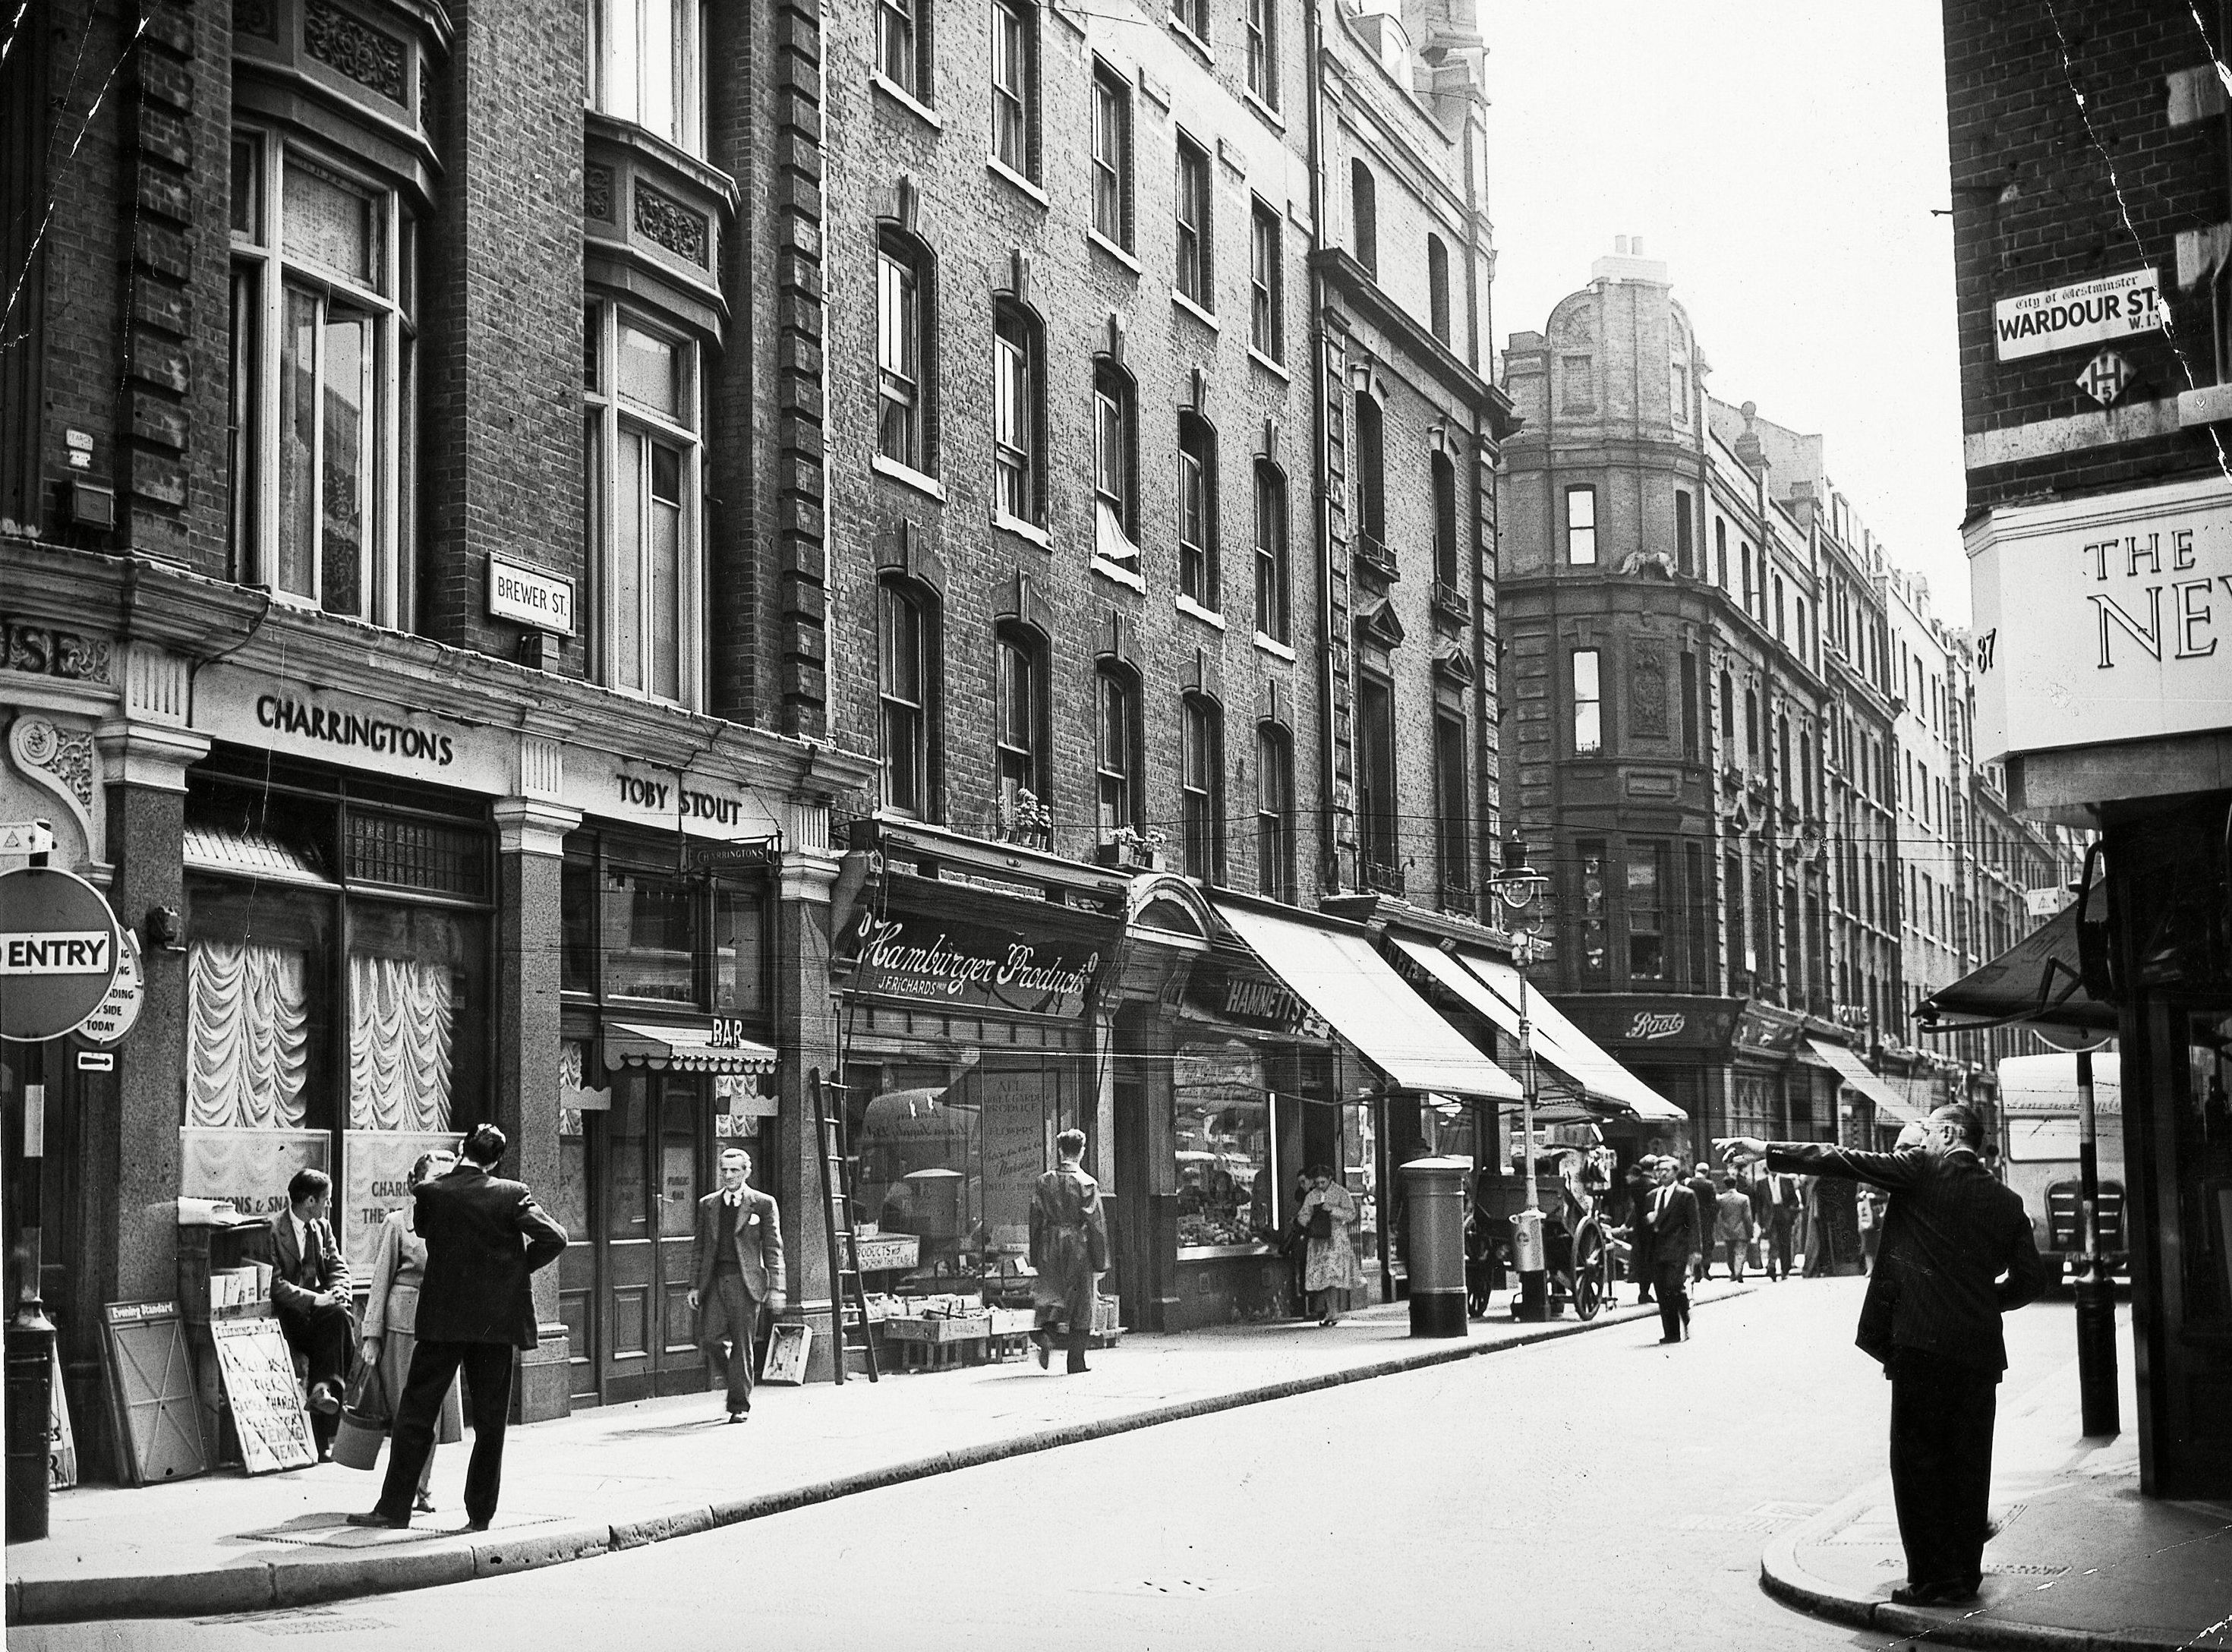 Brewer Street and the corner of Wardour Street in Soho, London, Britain 29 Jul 1956 Photo by Daily Mail/REX/Shutterstock